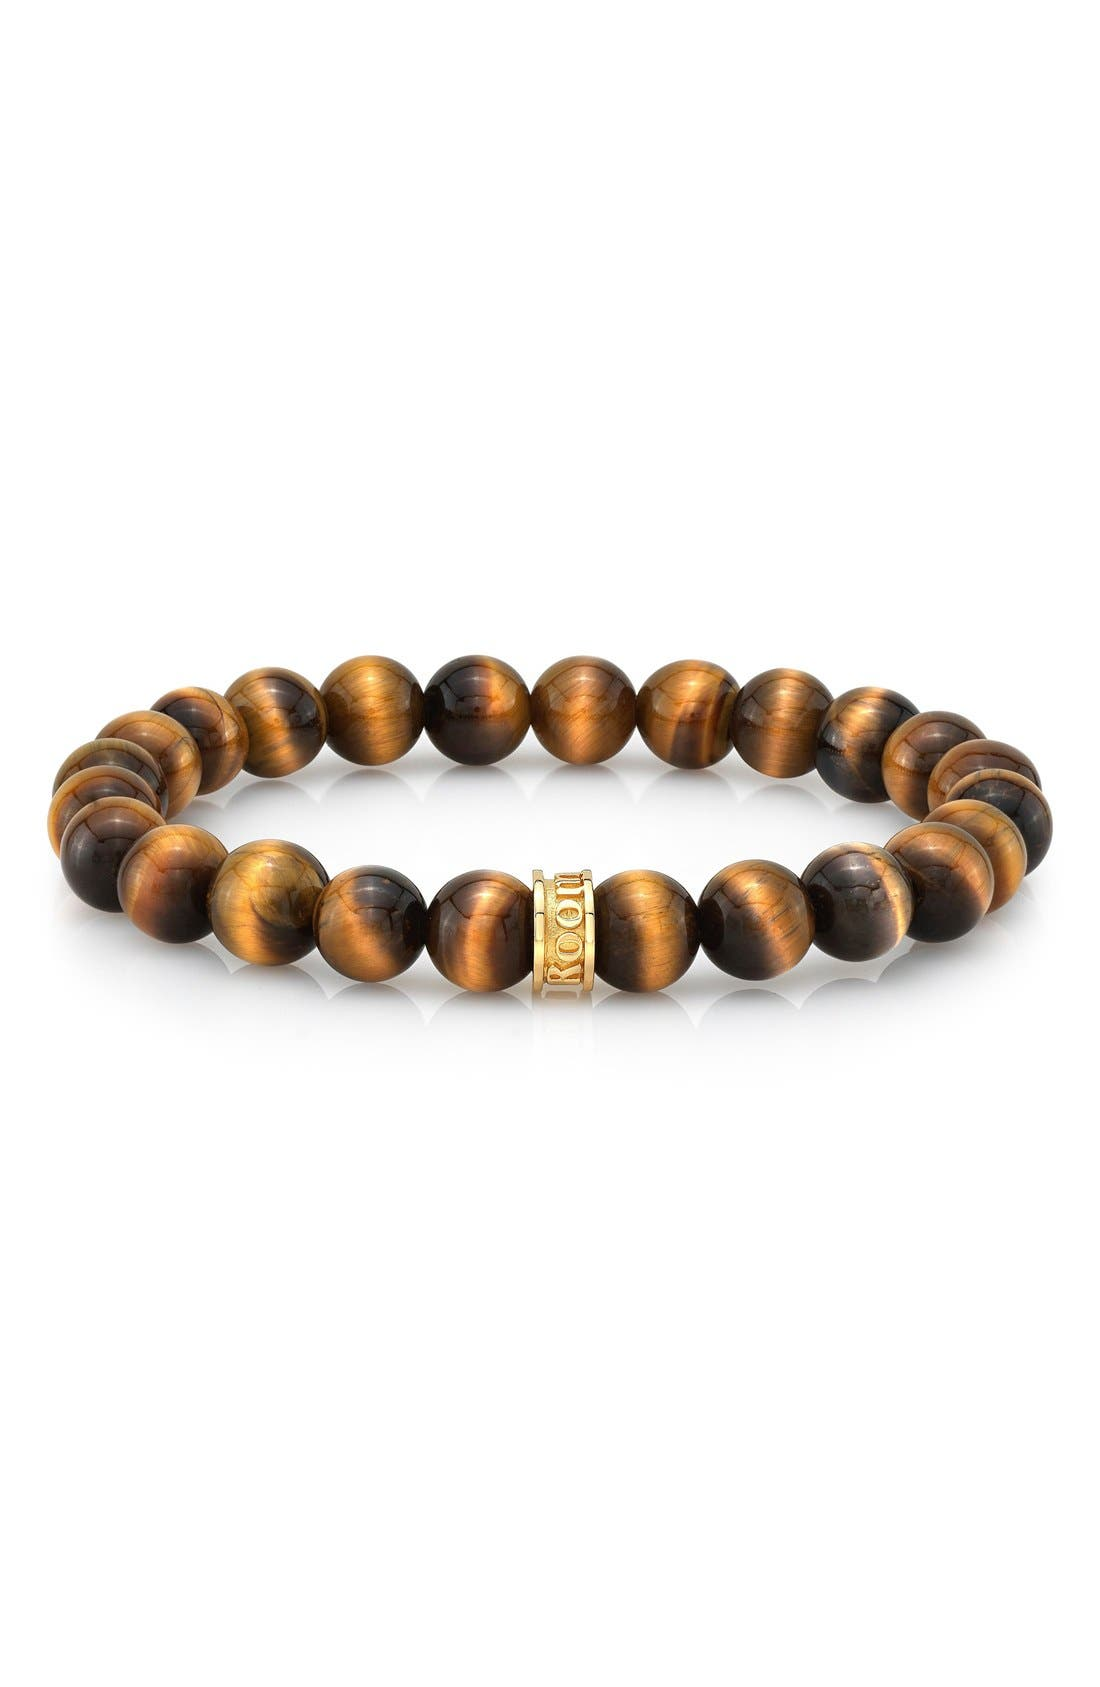 Tiger's Eye Bead Bracelet,                             Main thumbnail 1, color,                             Brown